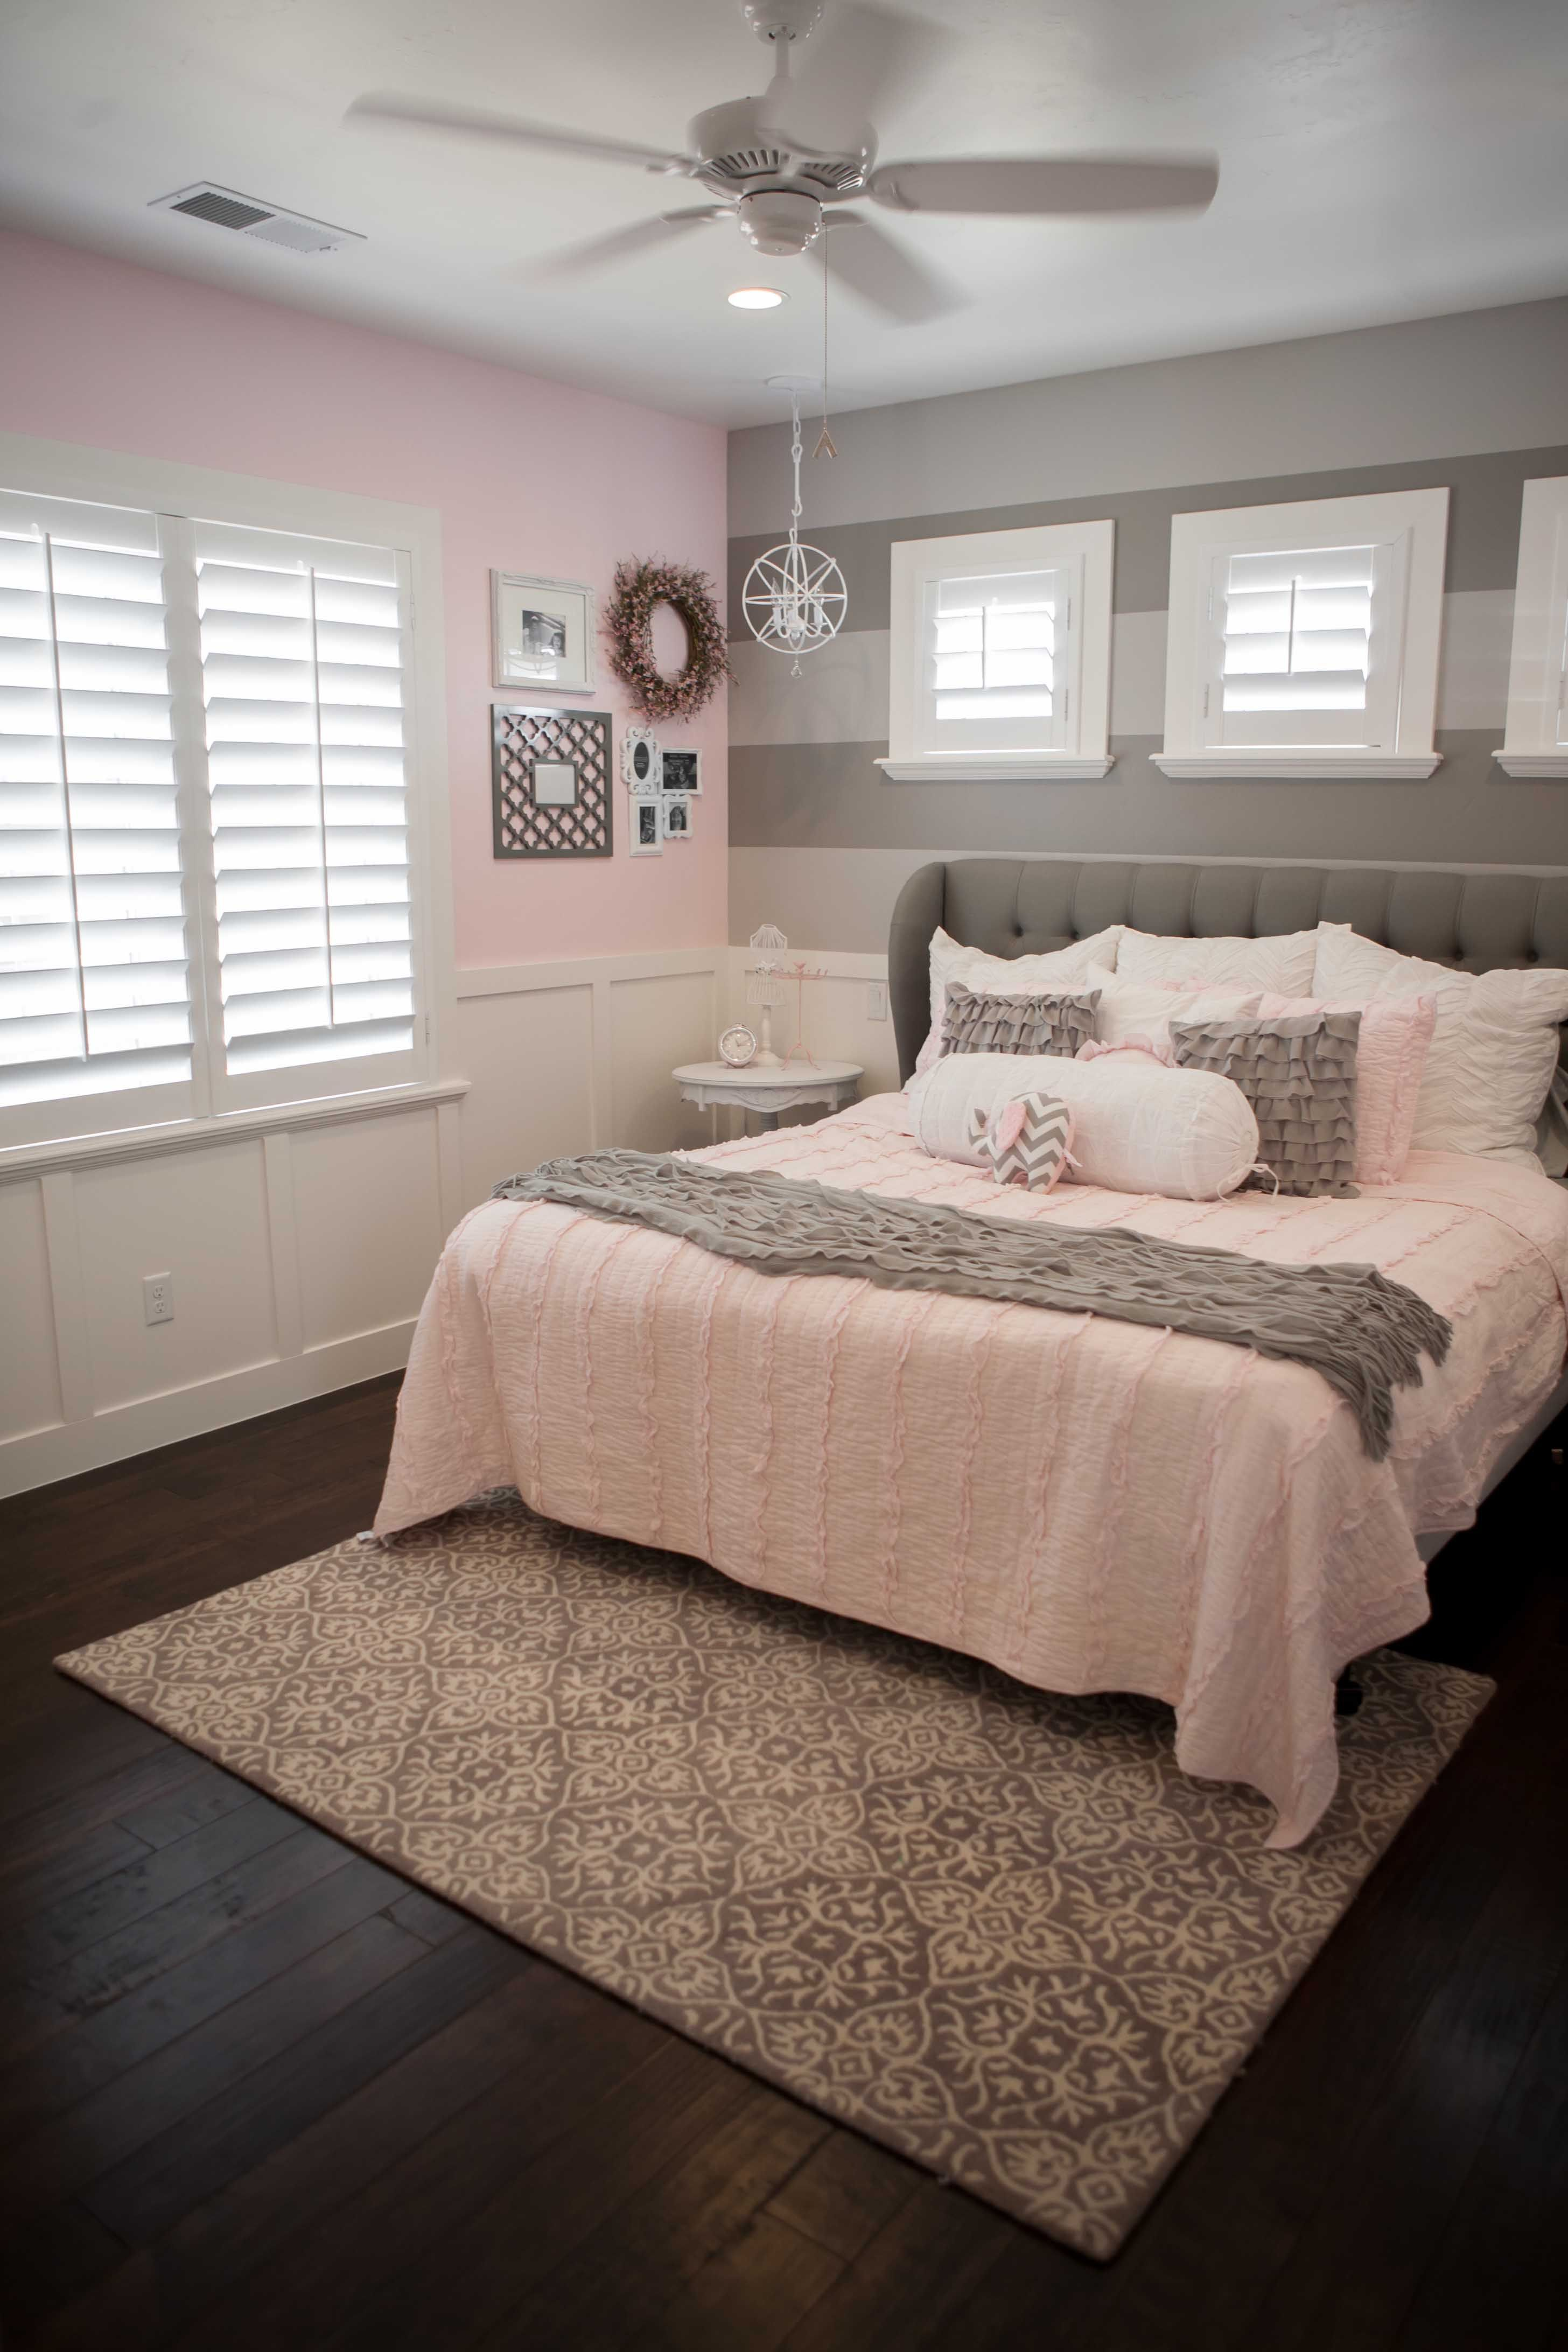 fabulous grey pink bedroom decorating ideas | Grey And Pink Bedroom Ideas - http://aprikot.xyz/074537 ...